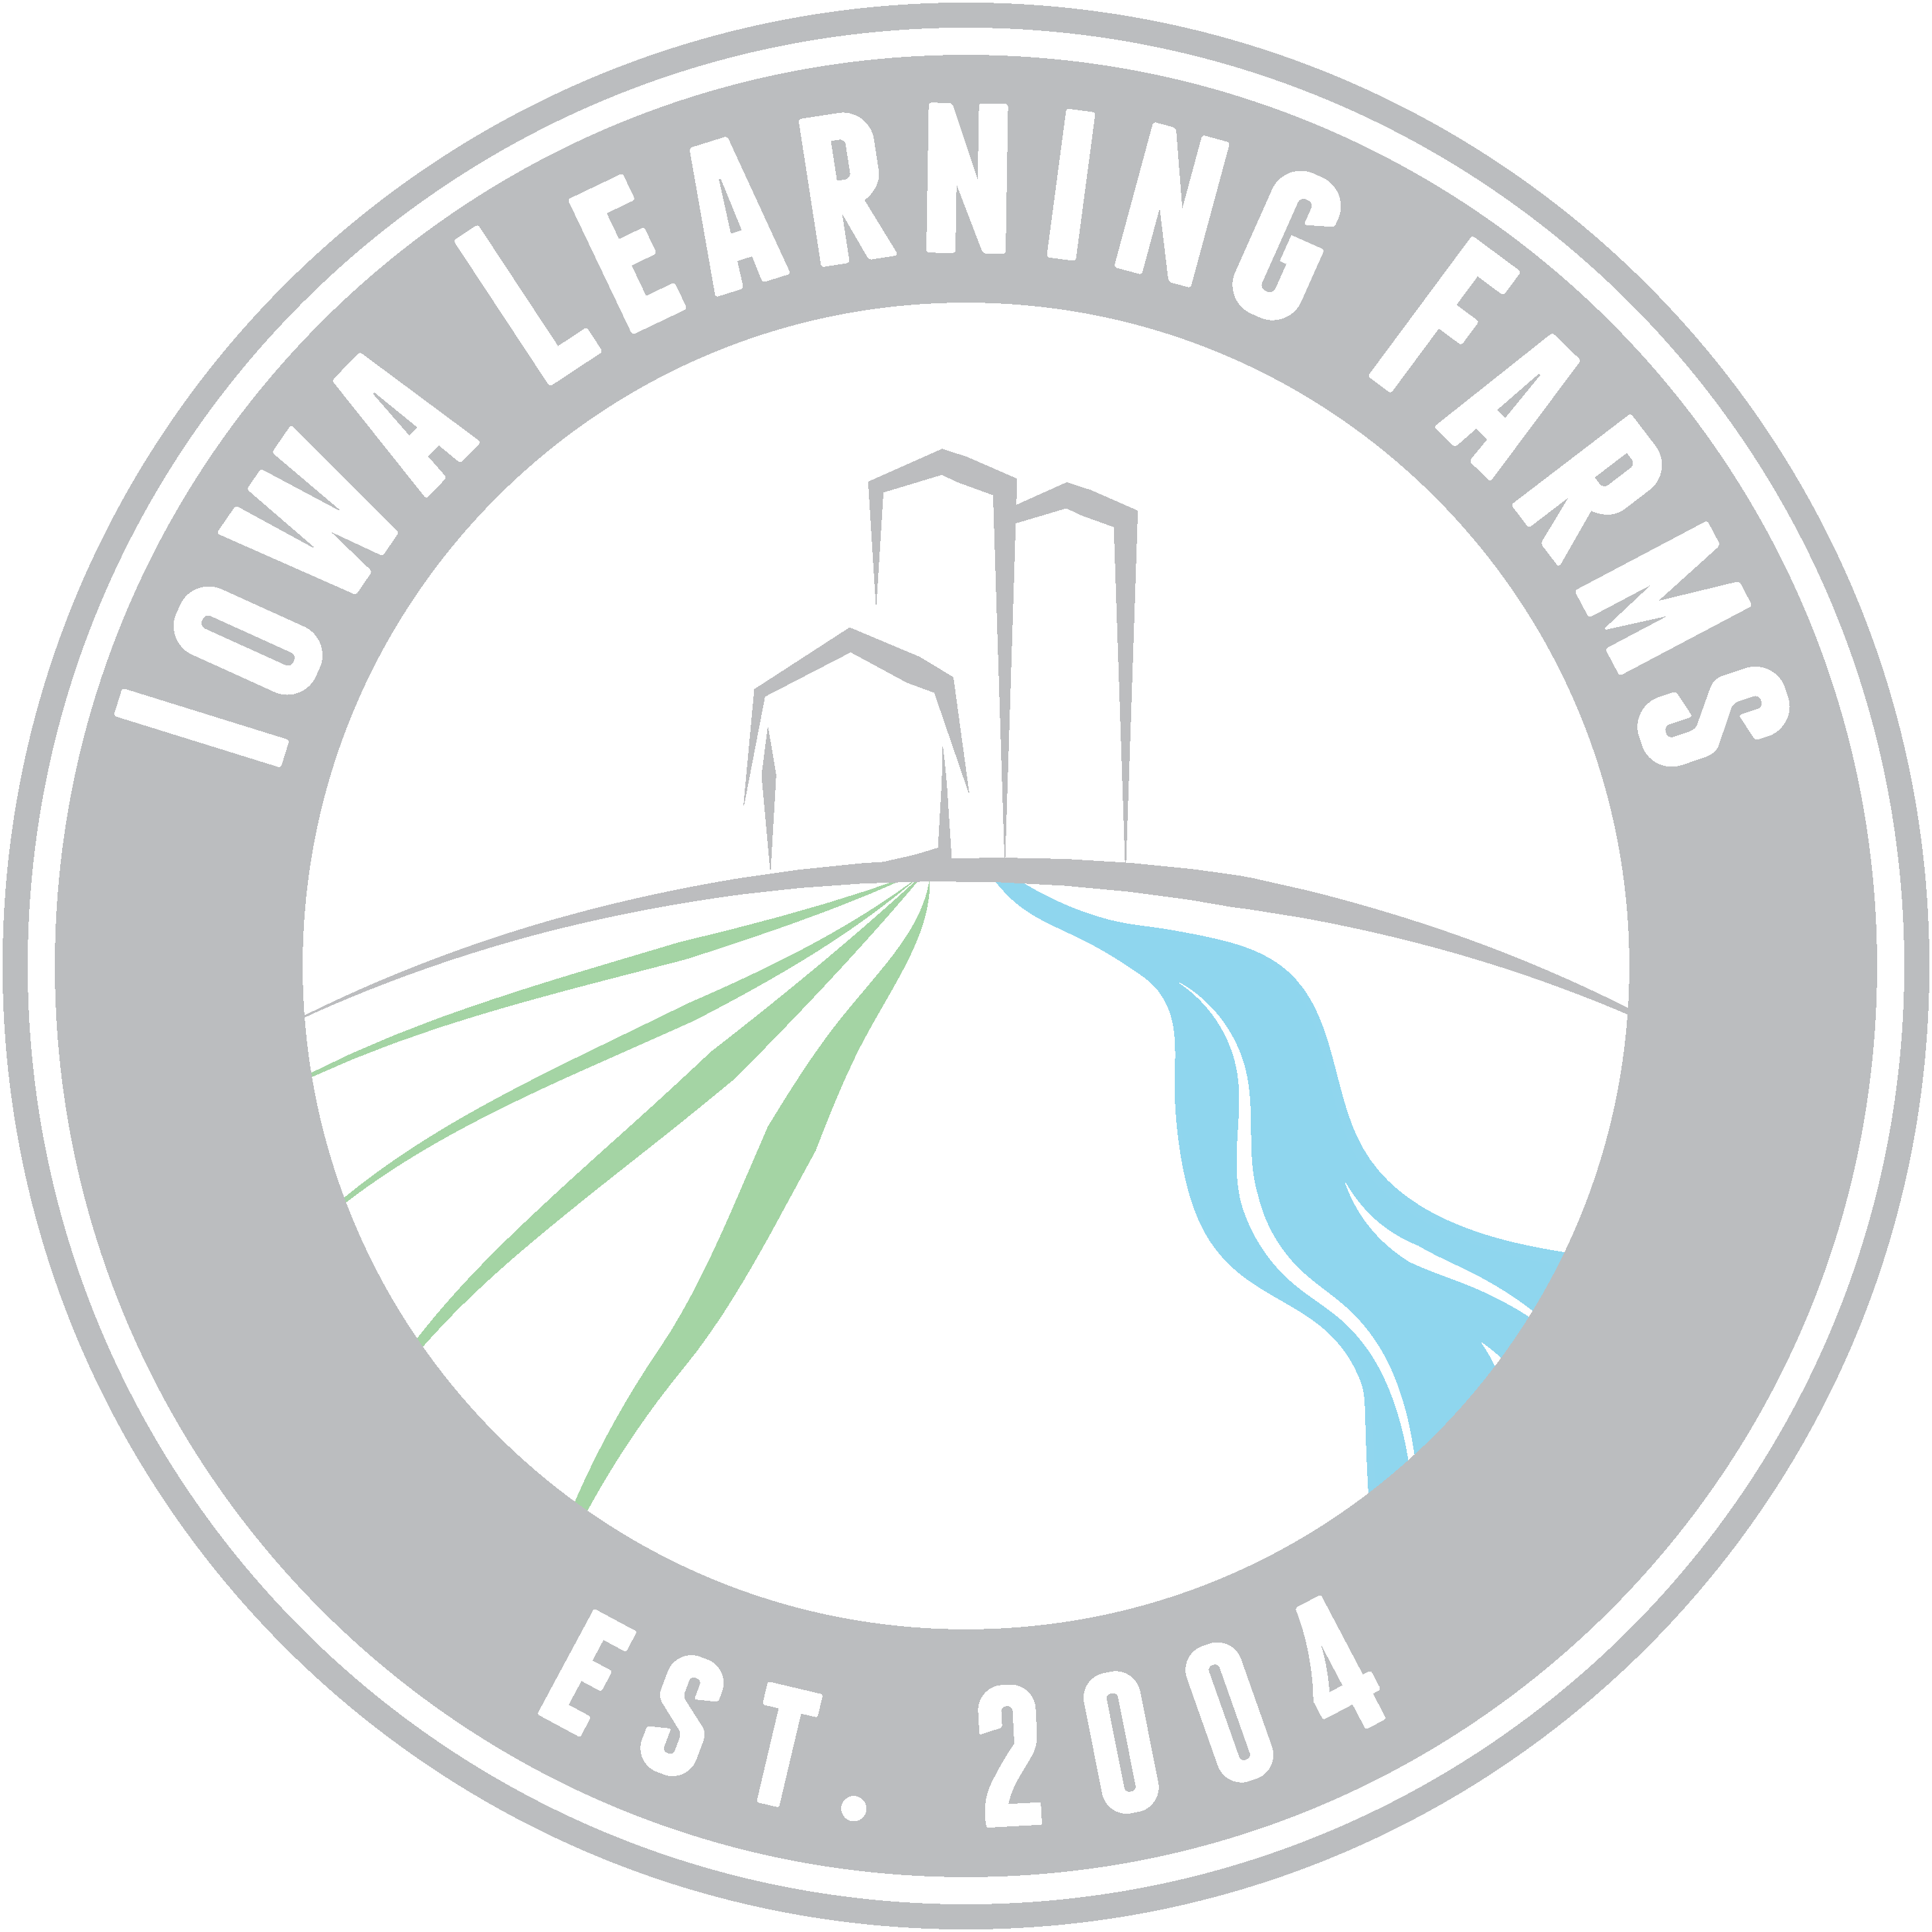 Iowa State University - Iowa Learning Farms